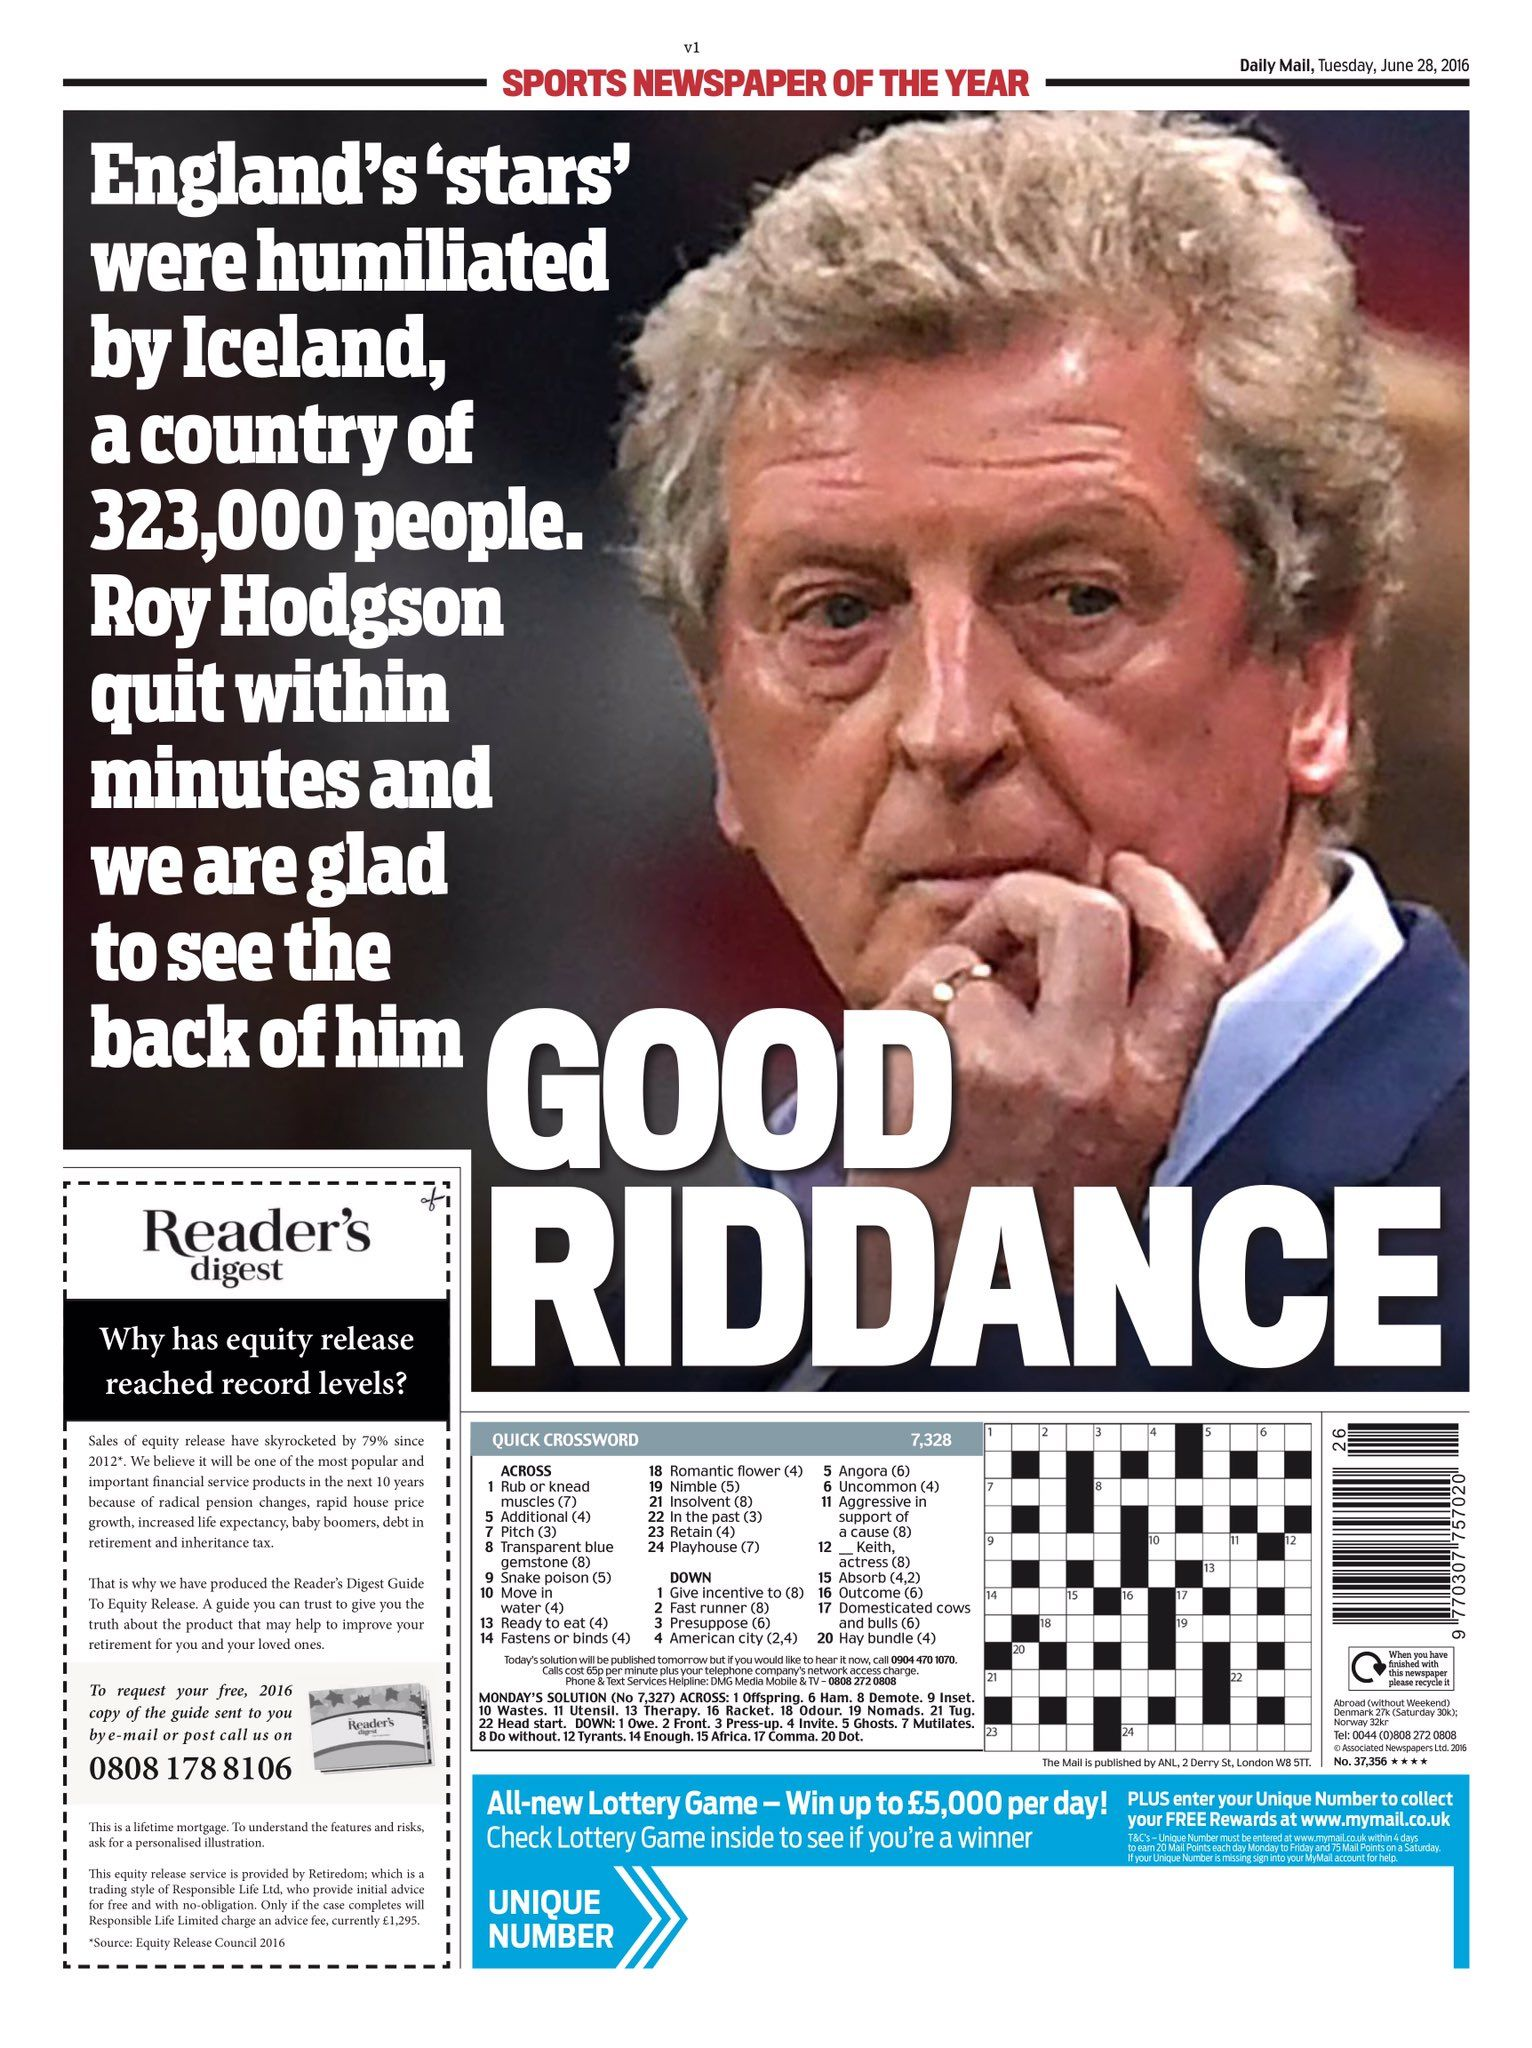 Tuesday's Daily Mail back page: Good Riddance #Tomorrowspaperstoday #bbcpapers #EURO2016 #ISL #eng https://t.co/Vtyp0KLsRh